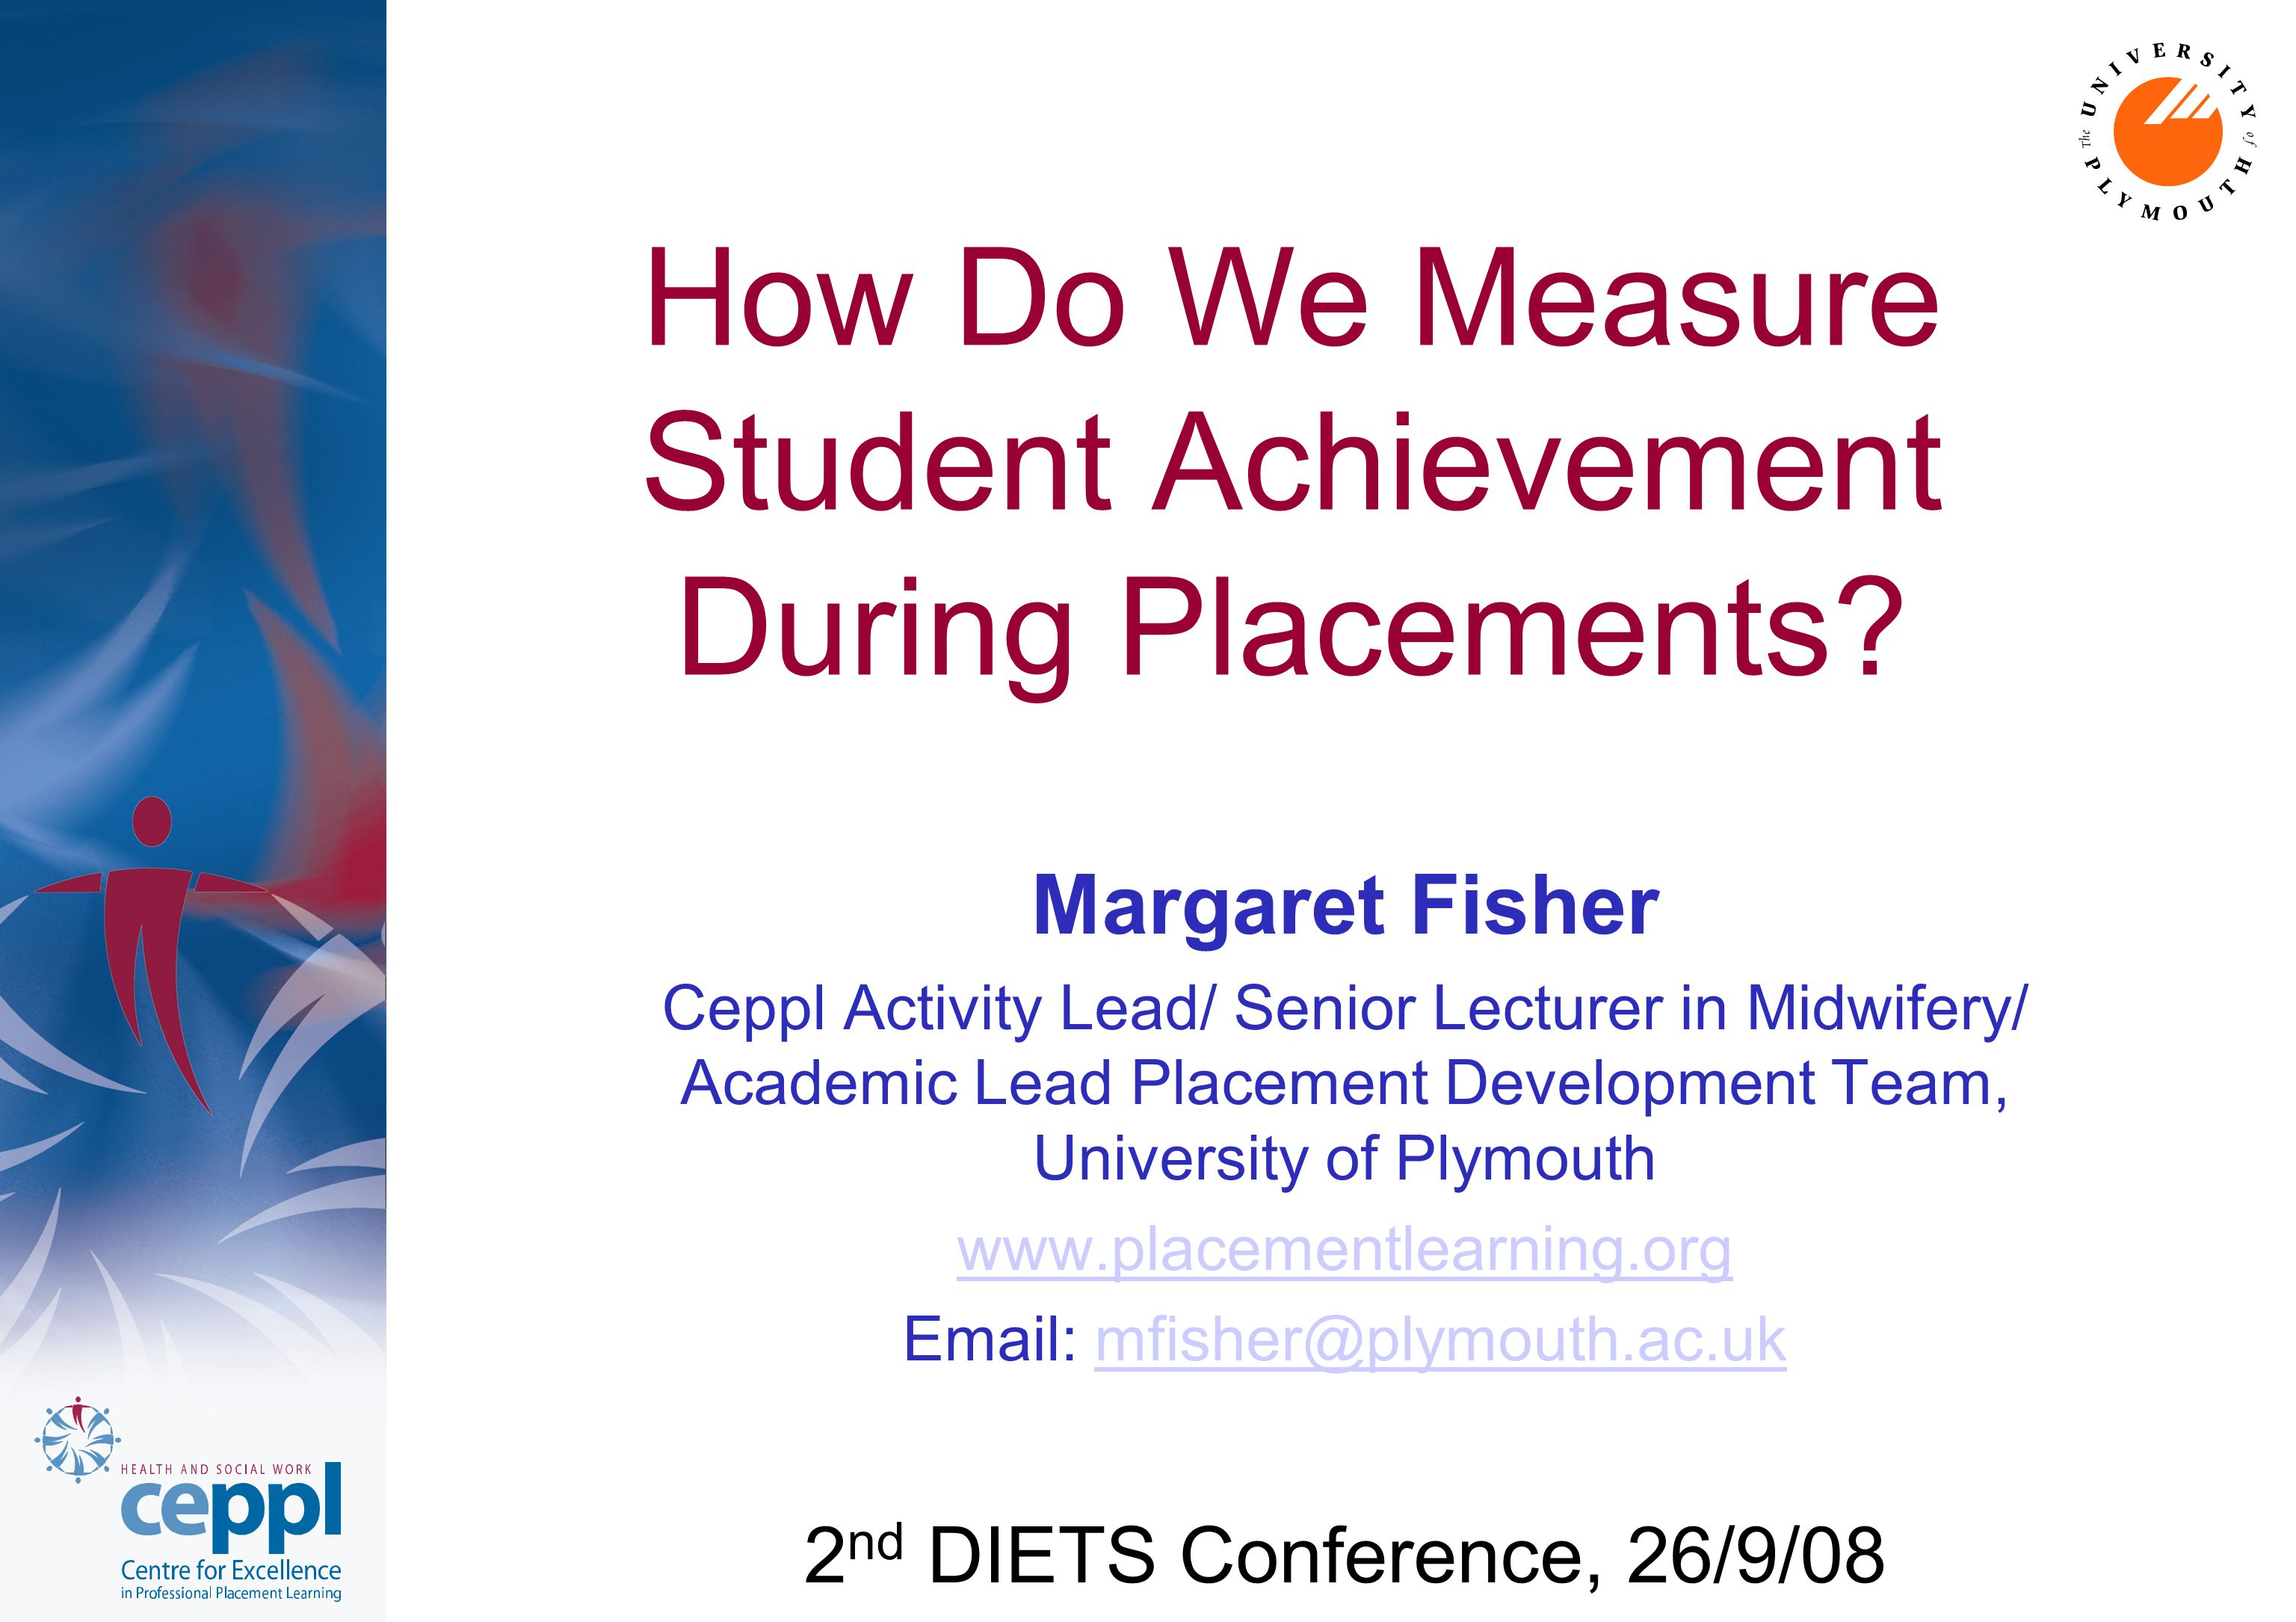 How Do We Measure Student Achievement During Placements.